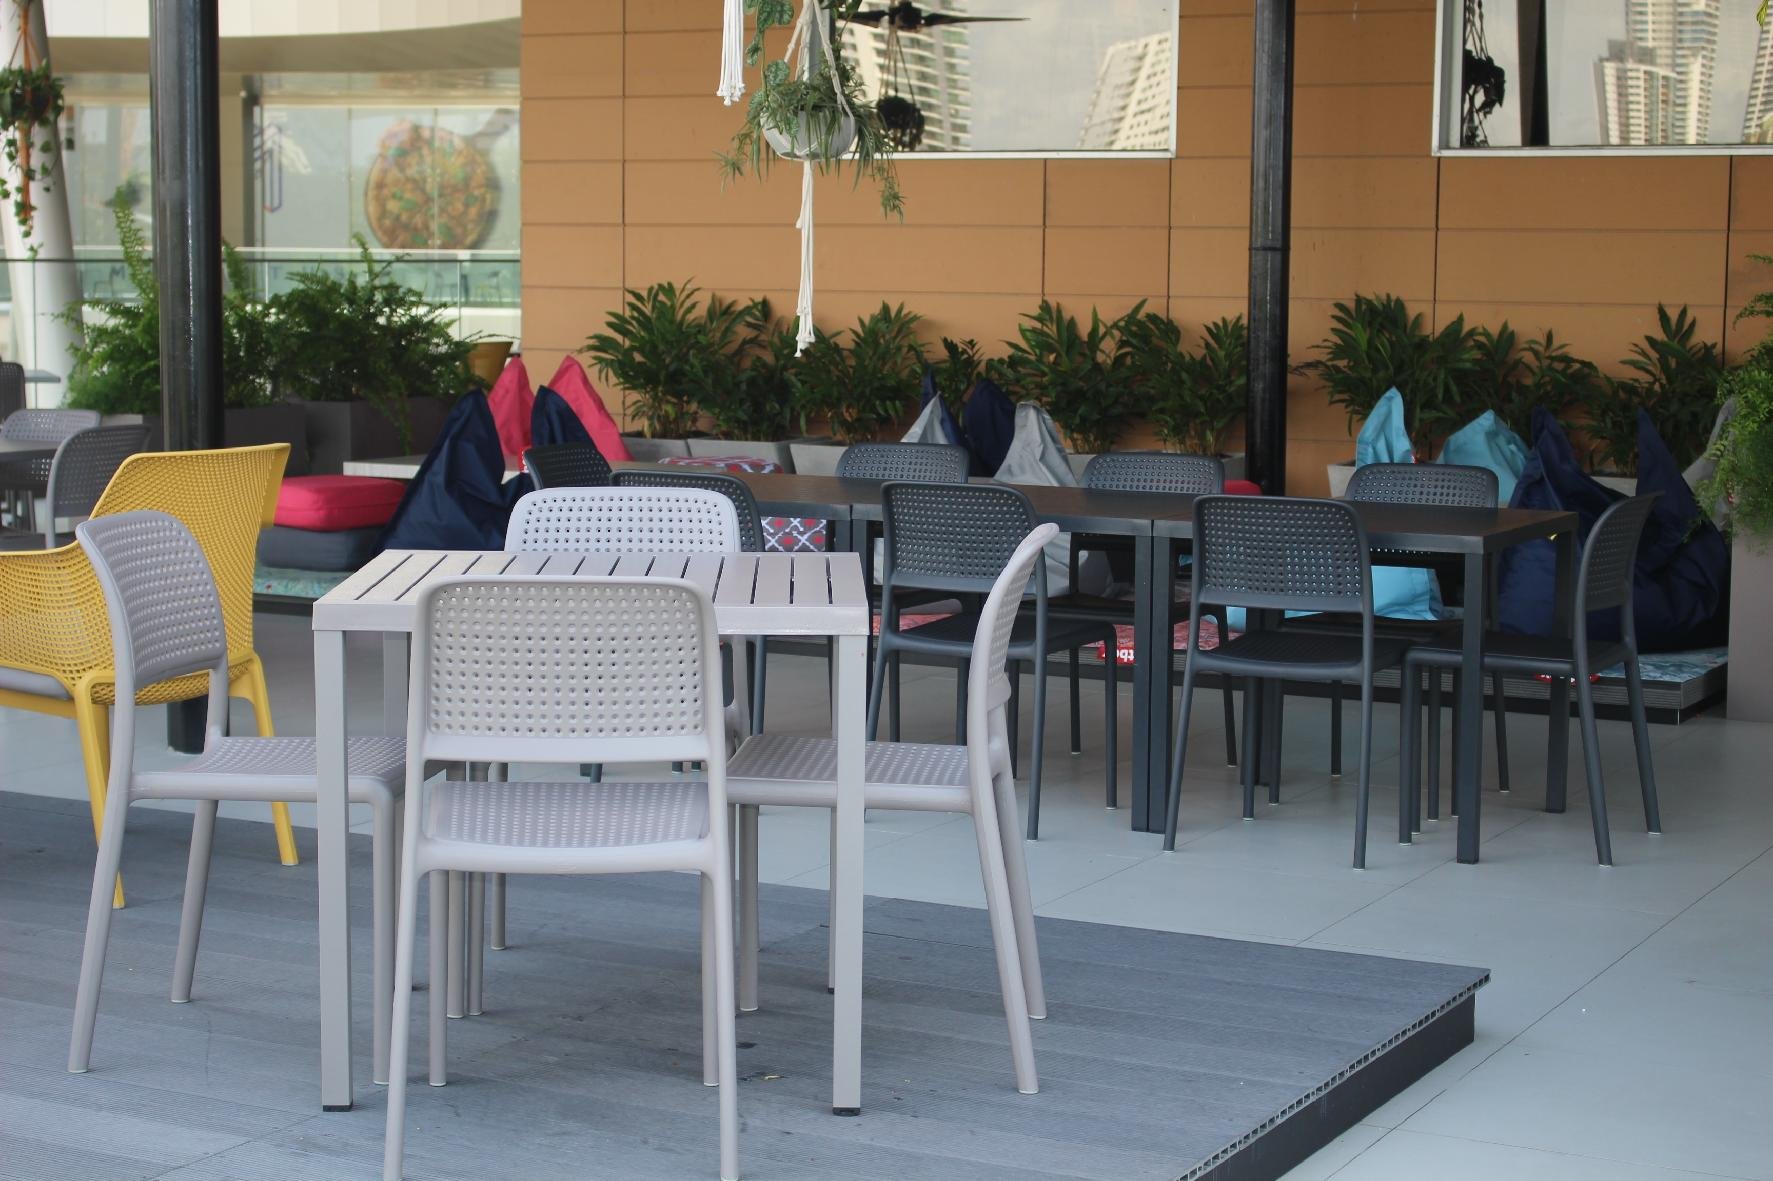 Bistrot outdoor furniture